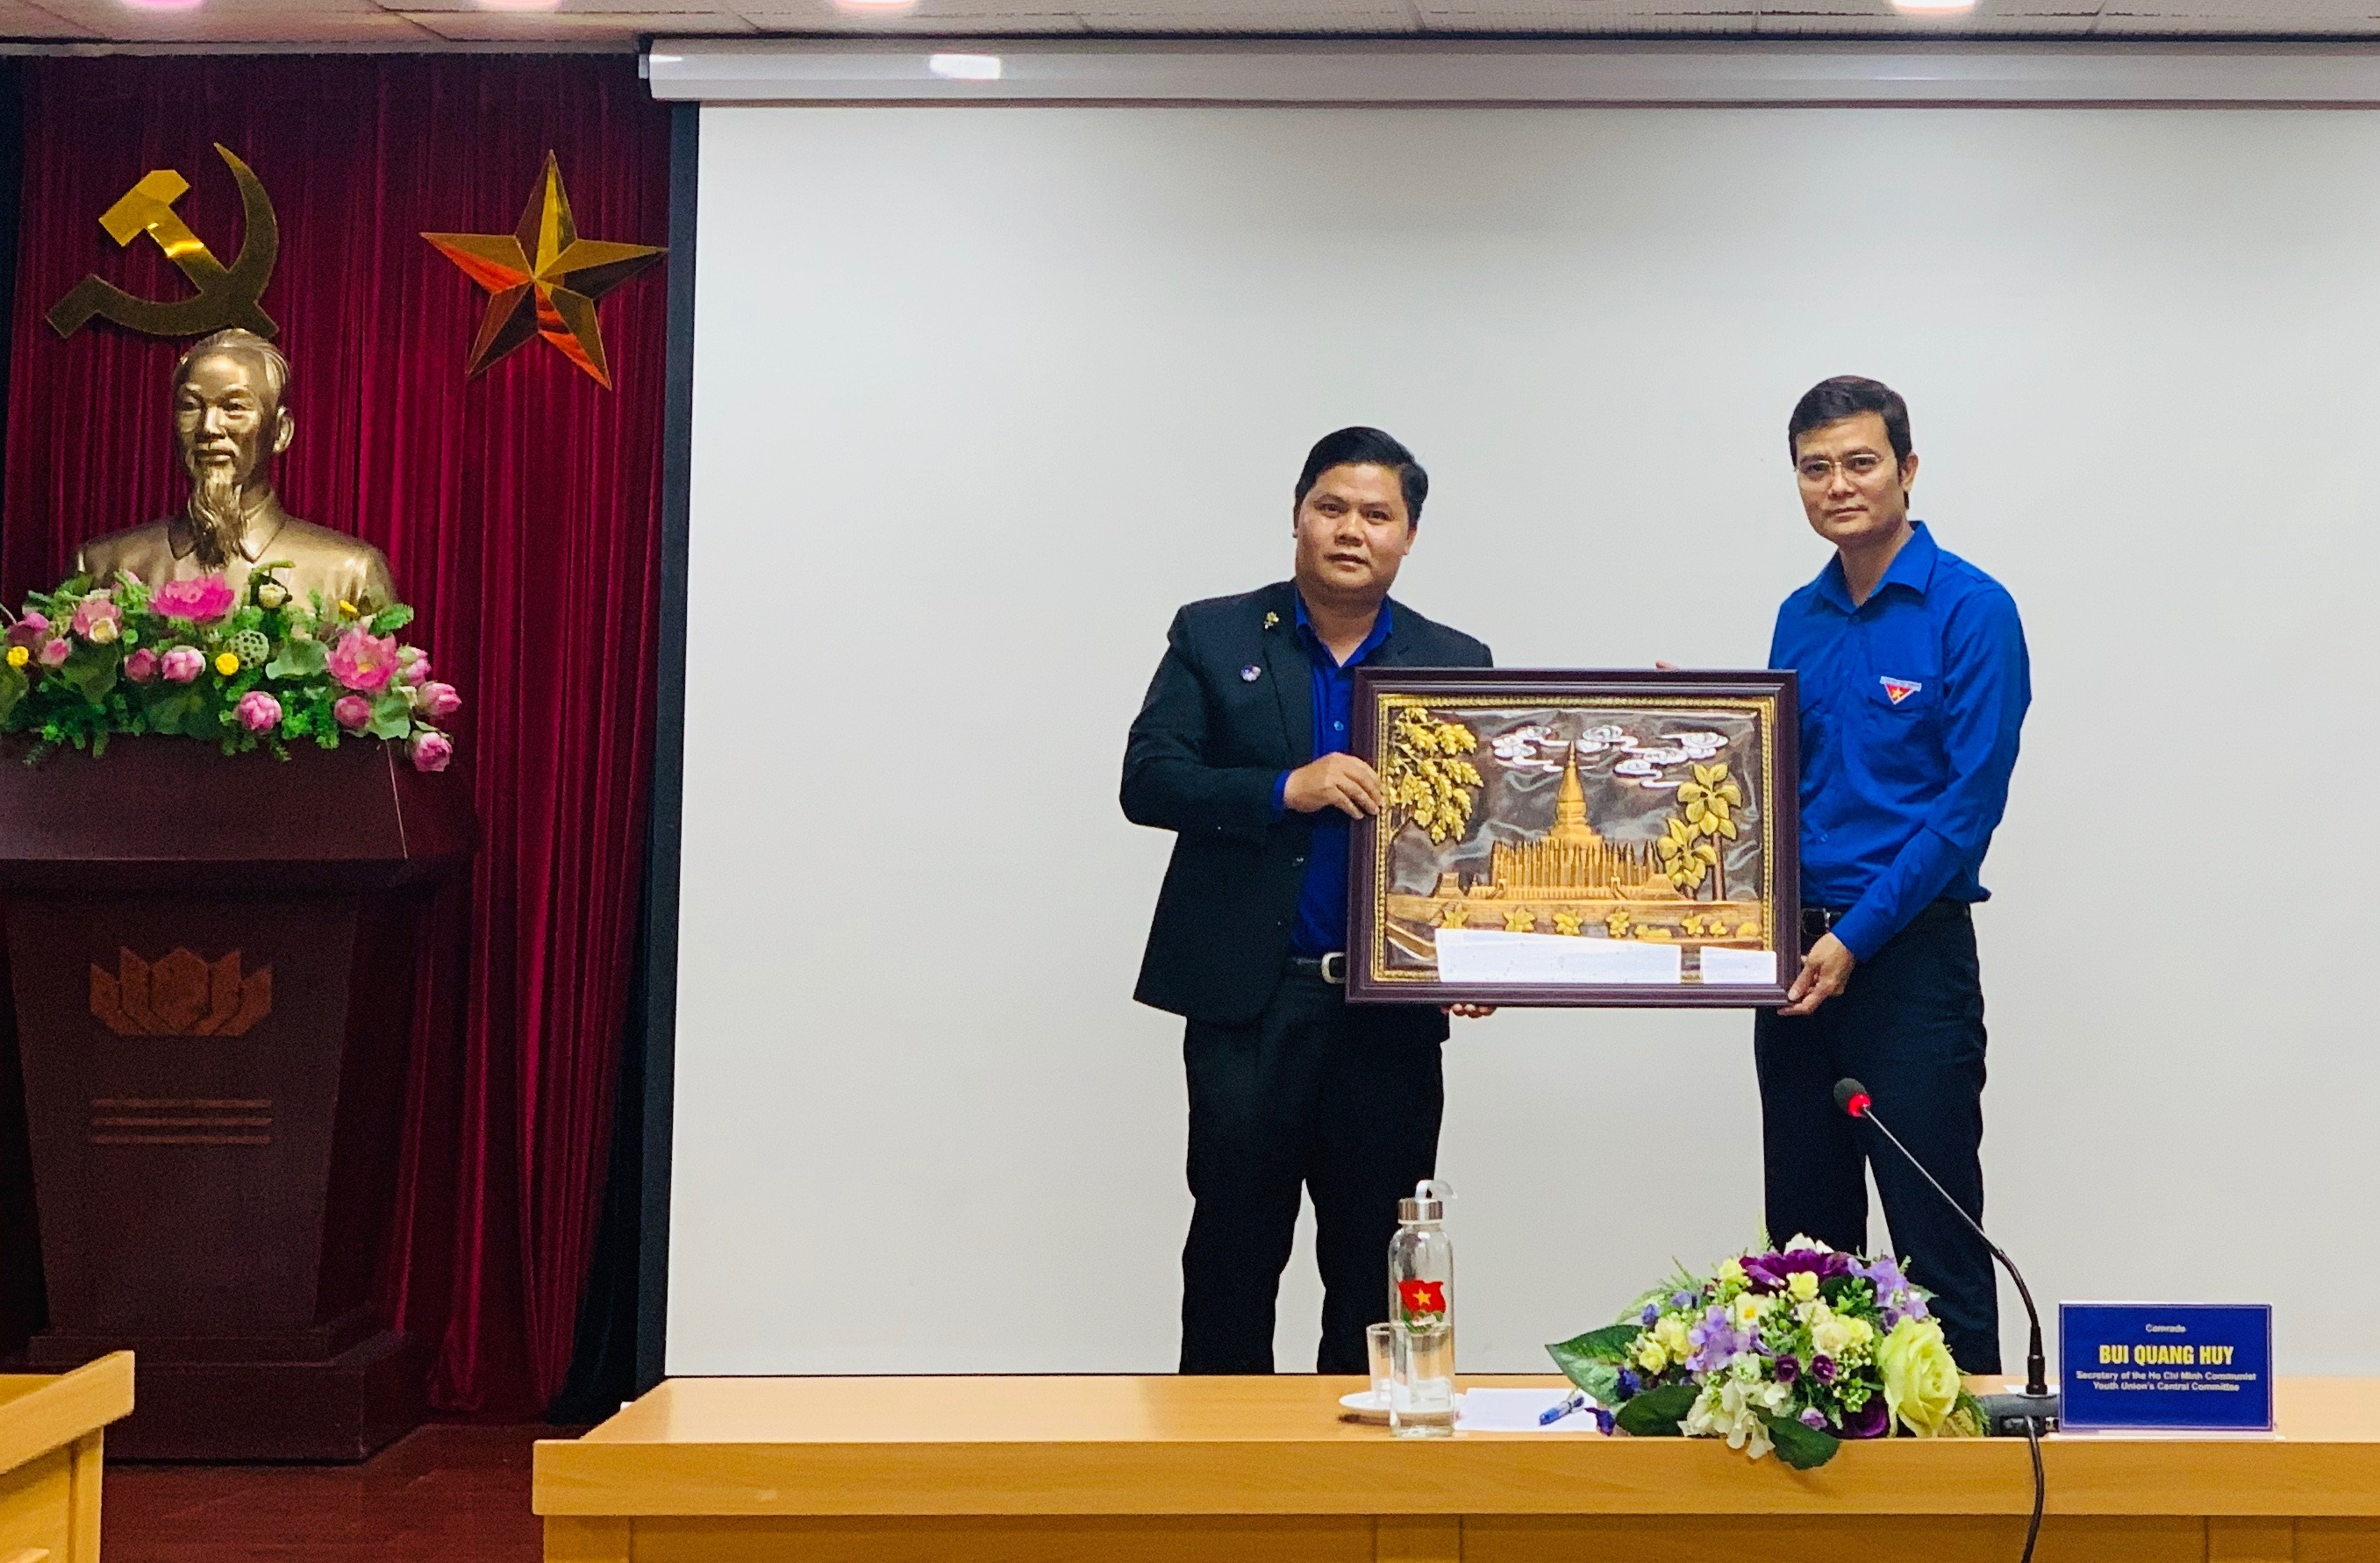 Mr. Bui Quang Huy and Mr. Kham LeXay Nha Vong Si exchanged gift